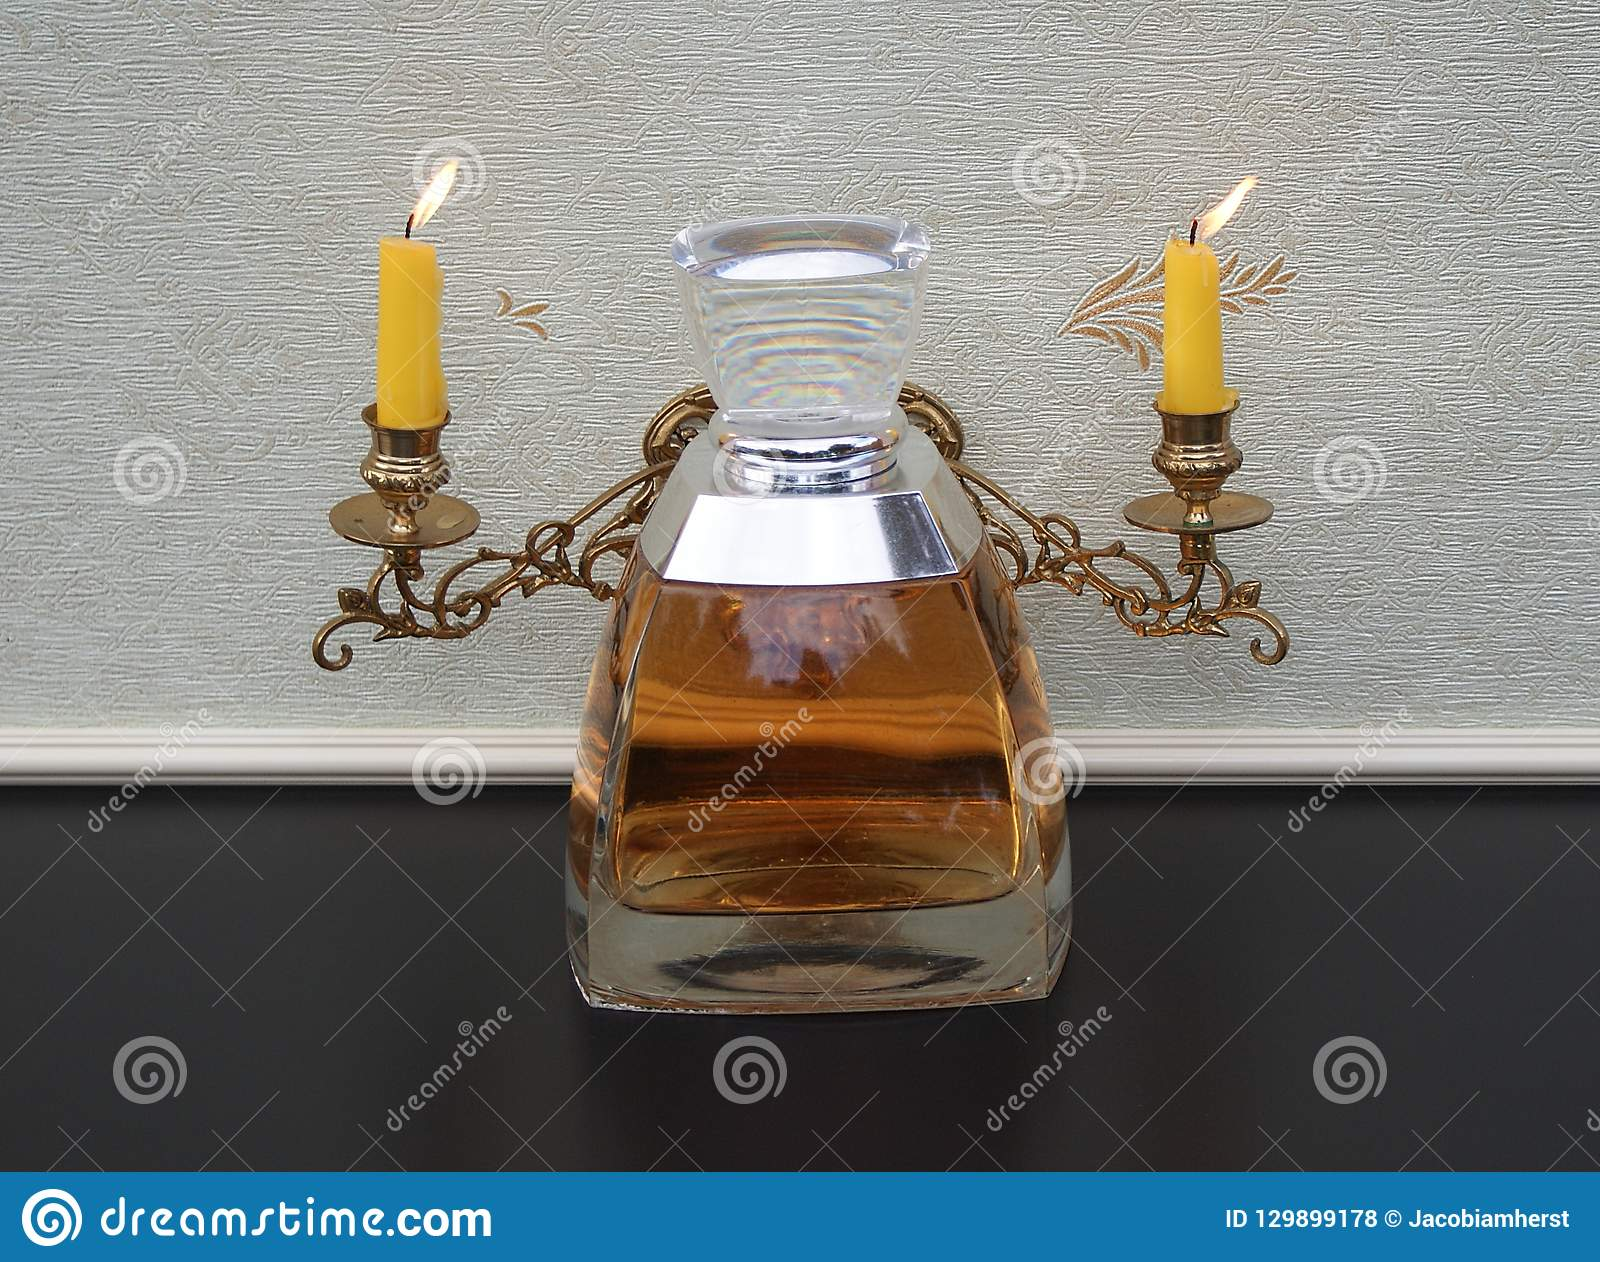 Vera Wang Fragrance For Ladies Large Perfume Bottle In Front Of A Piano Candelabra With Shining Candles Stock Photo Image Of Life Intense 129899178